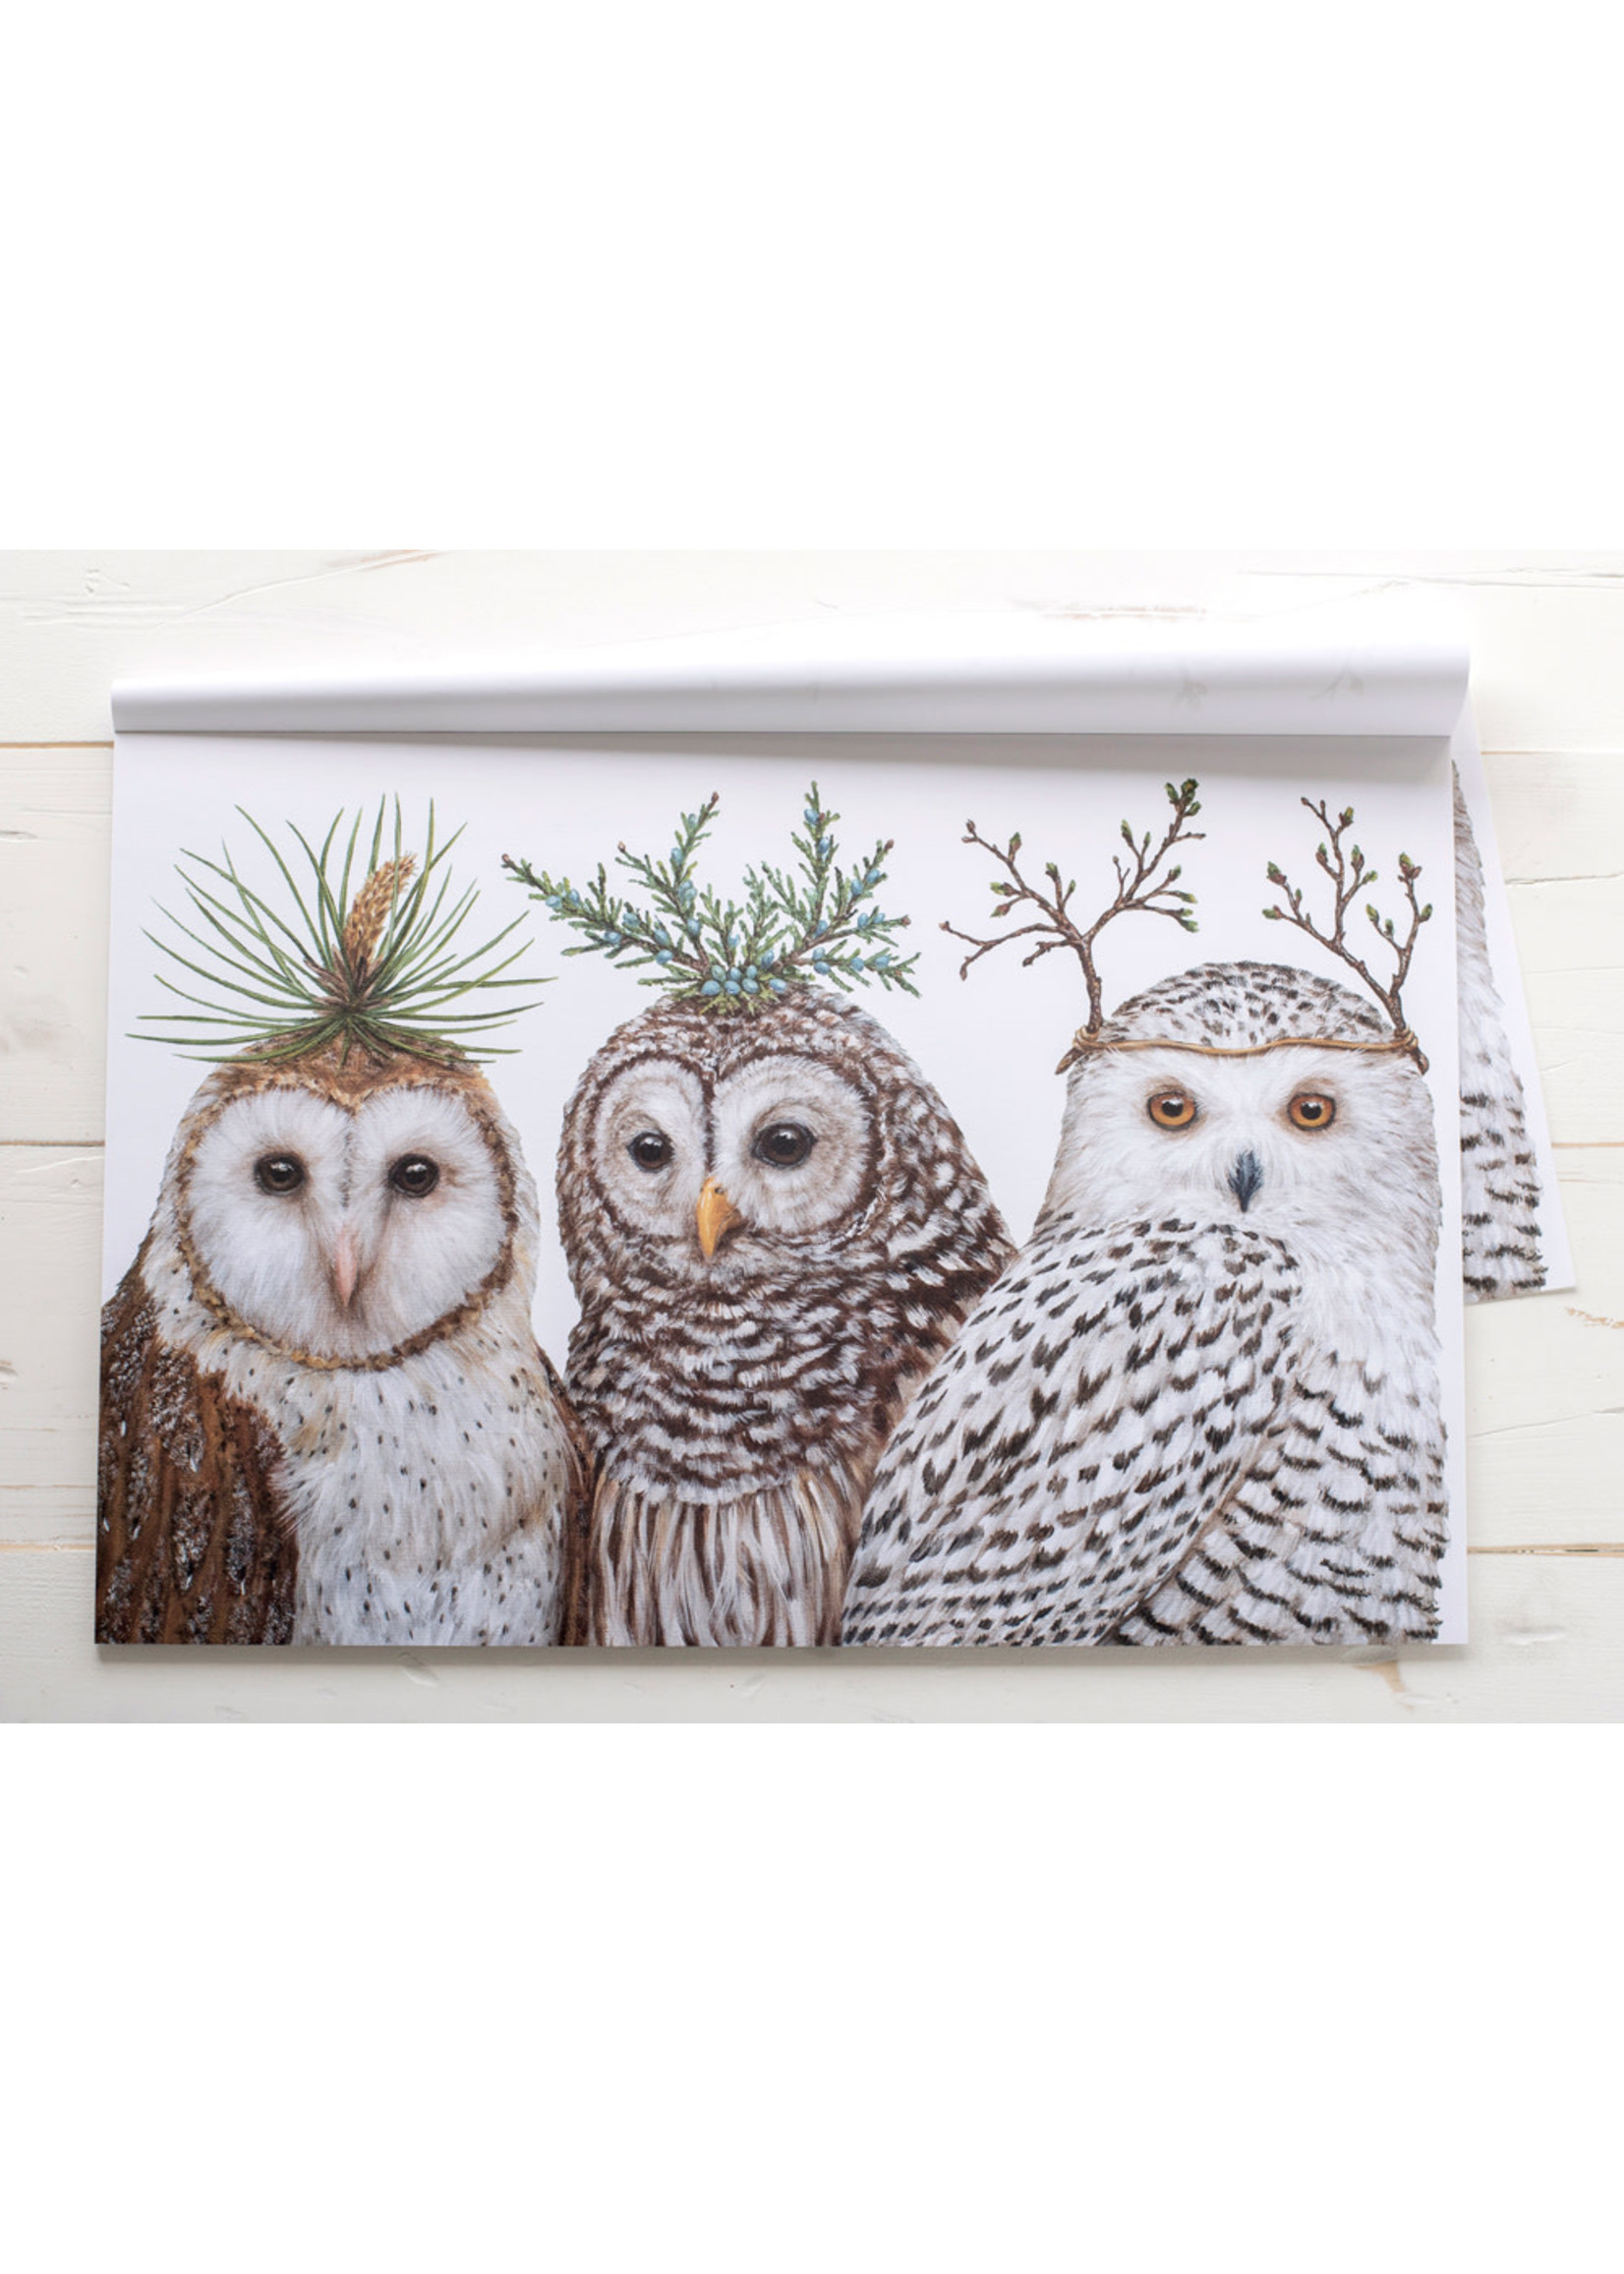 Hester & Cook Paper Placemats - Winter Owls (24 sheets)